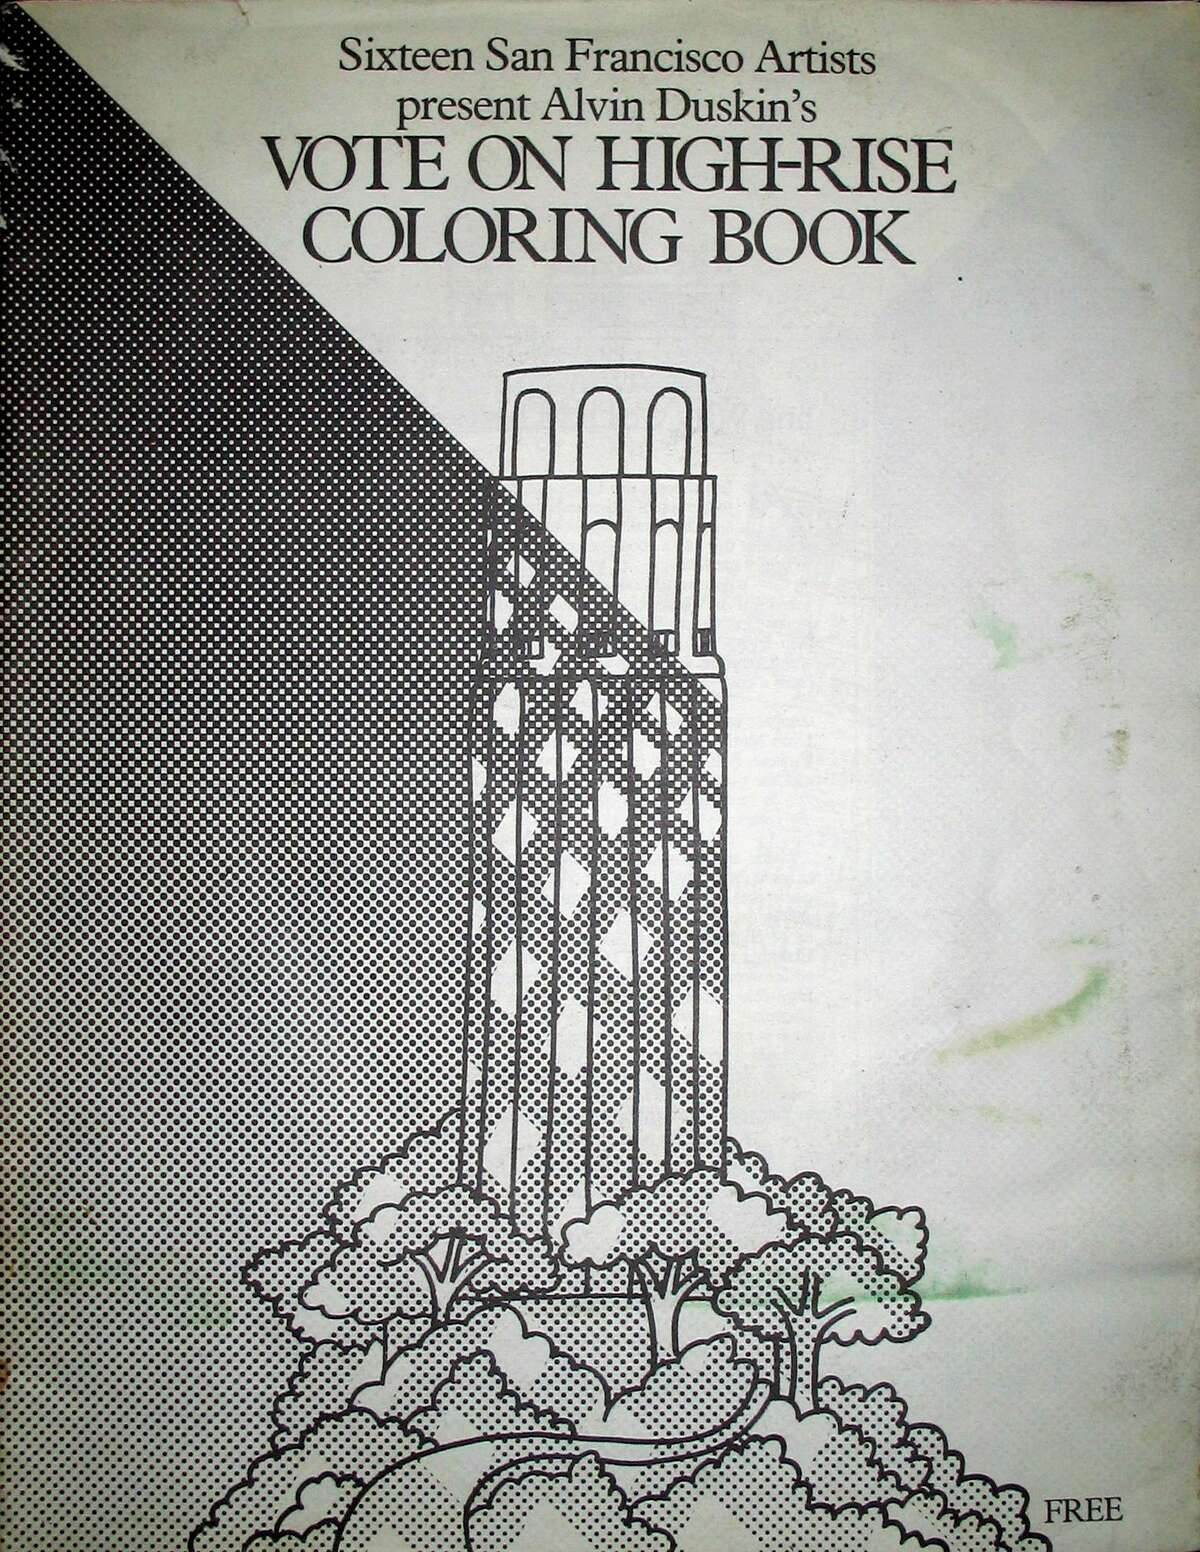 Alvin Duskin distributed a coloring book to get the word out about his campaign in San Francisco to ban all buildings above 72 feet.